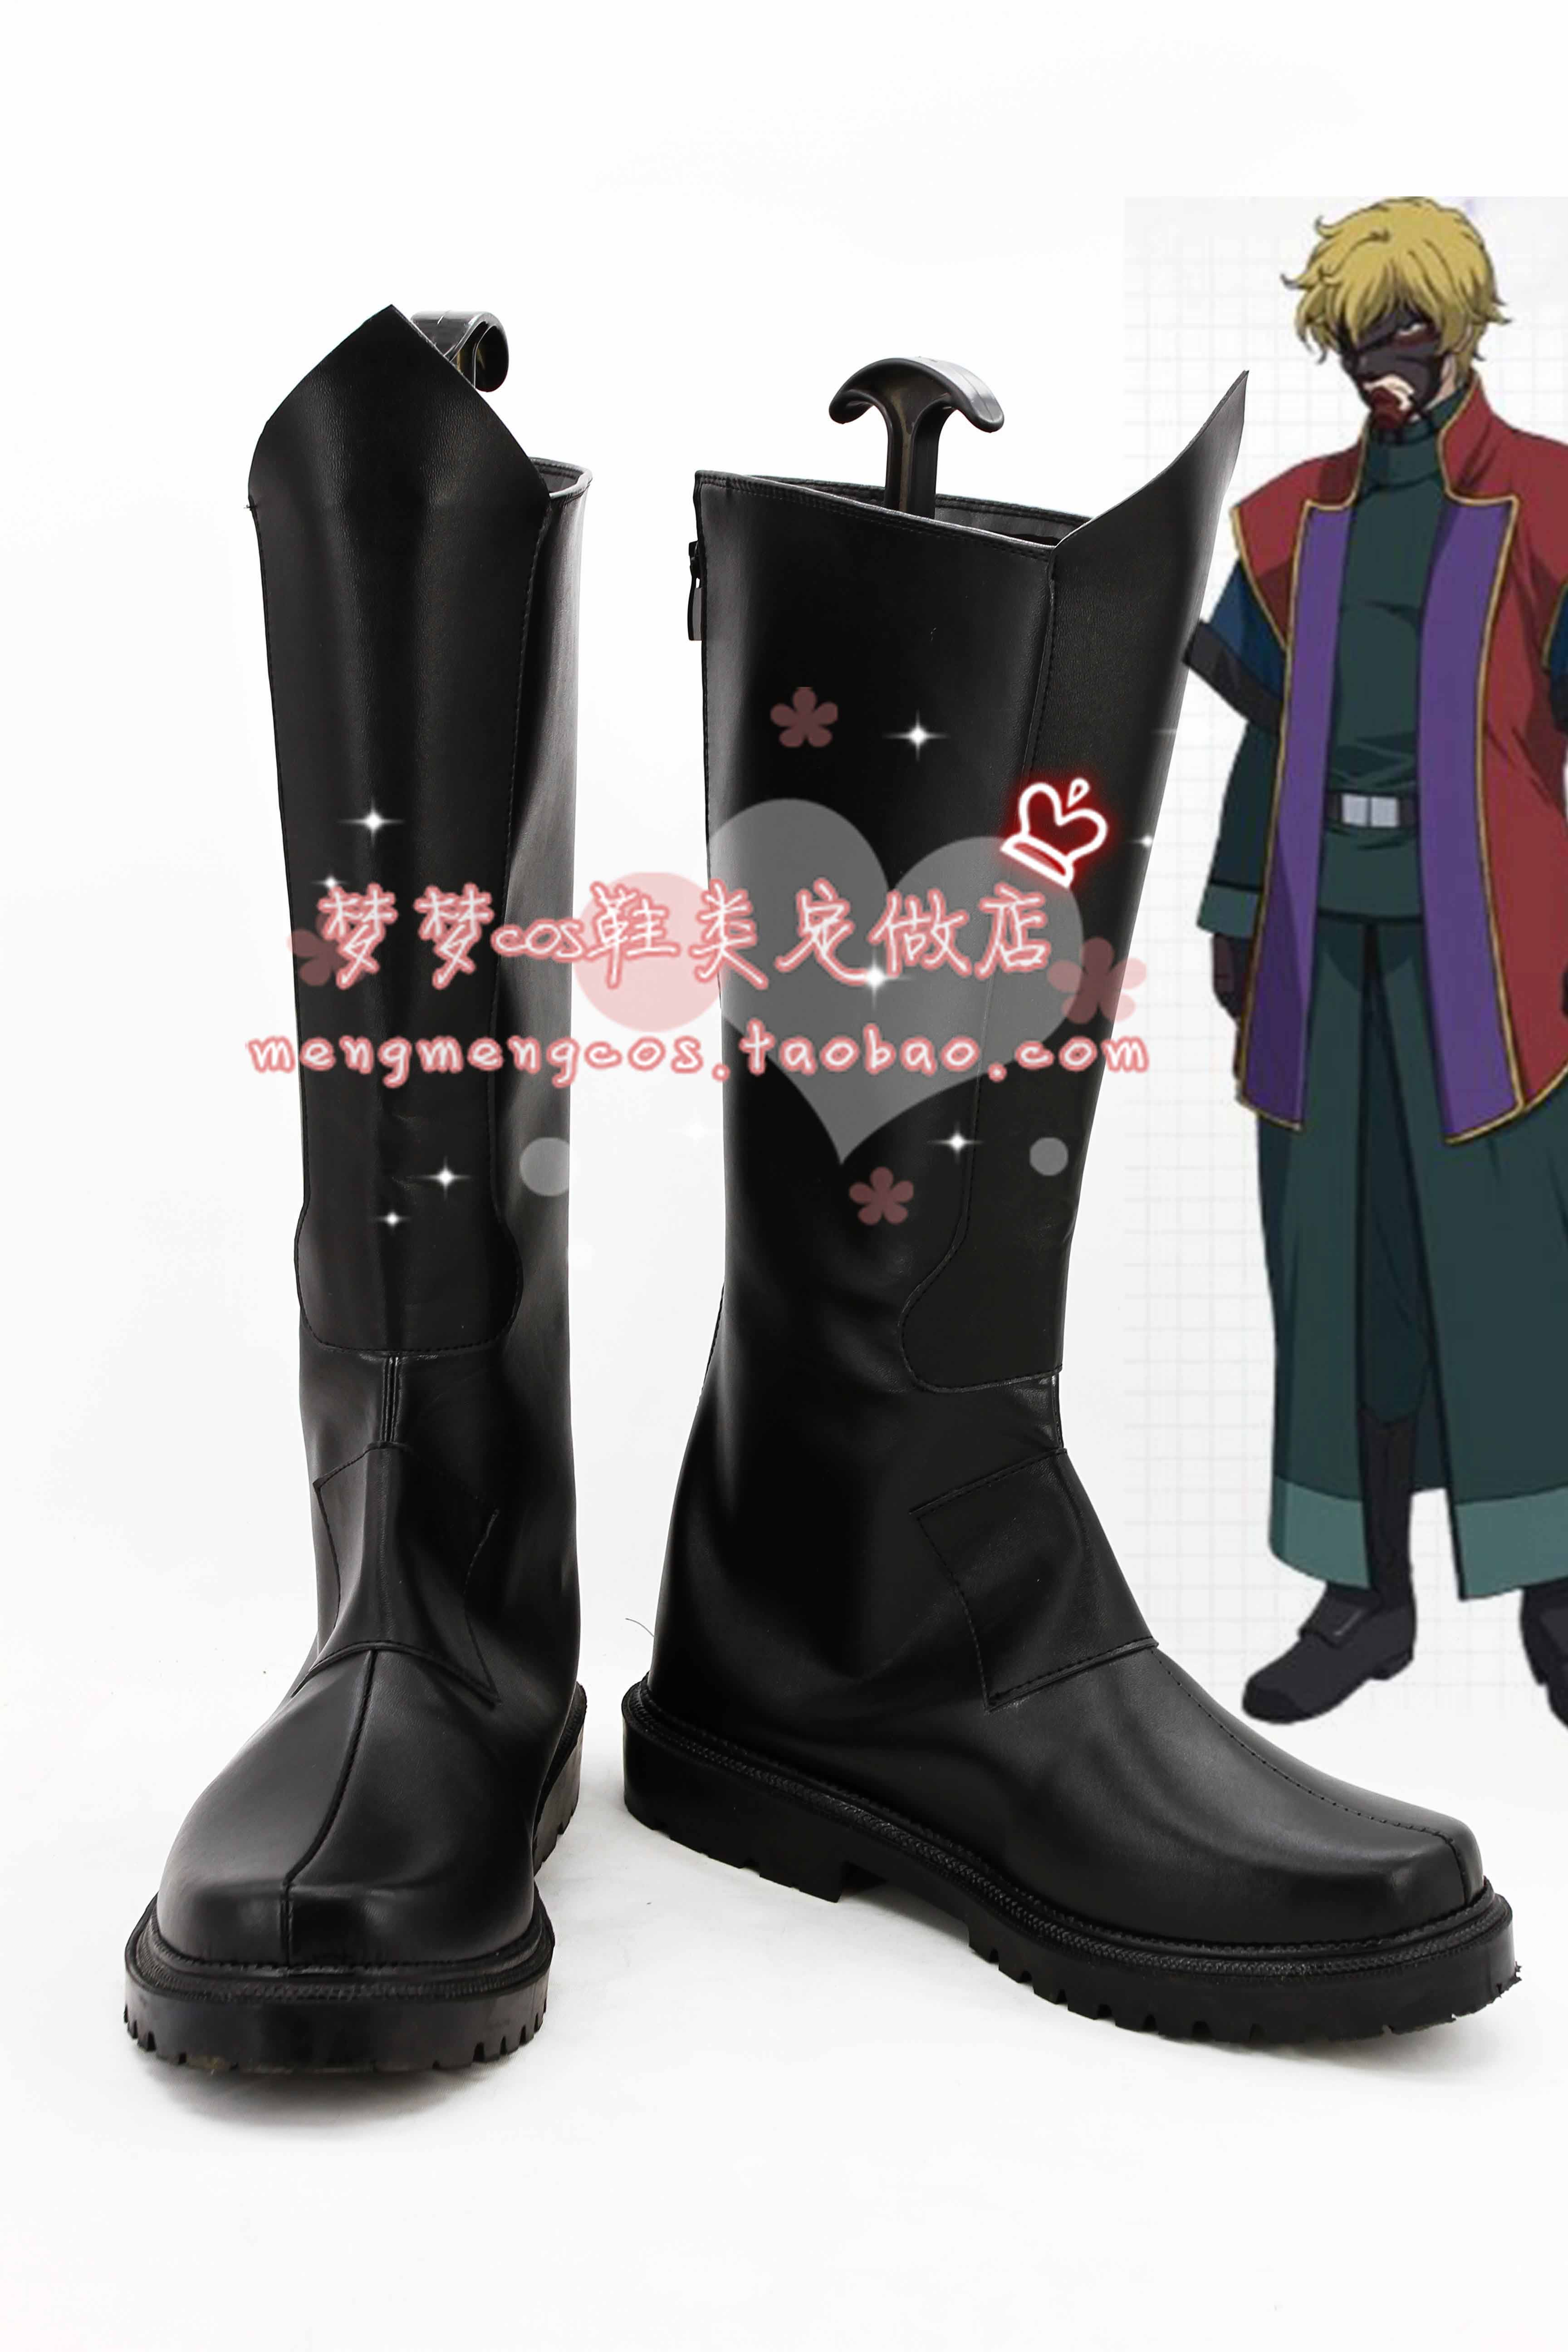 MOBILE SUIT Graham Aker cosplay shoes anime boots<br>